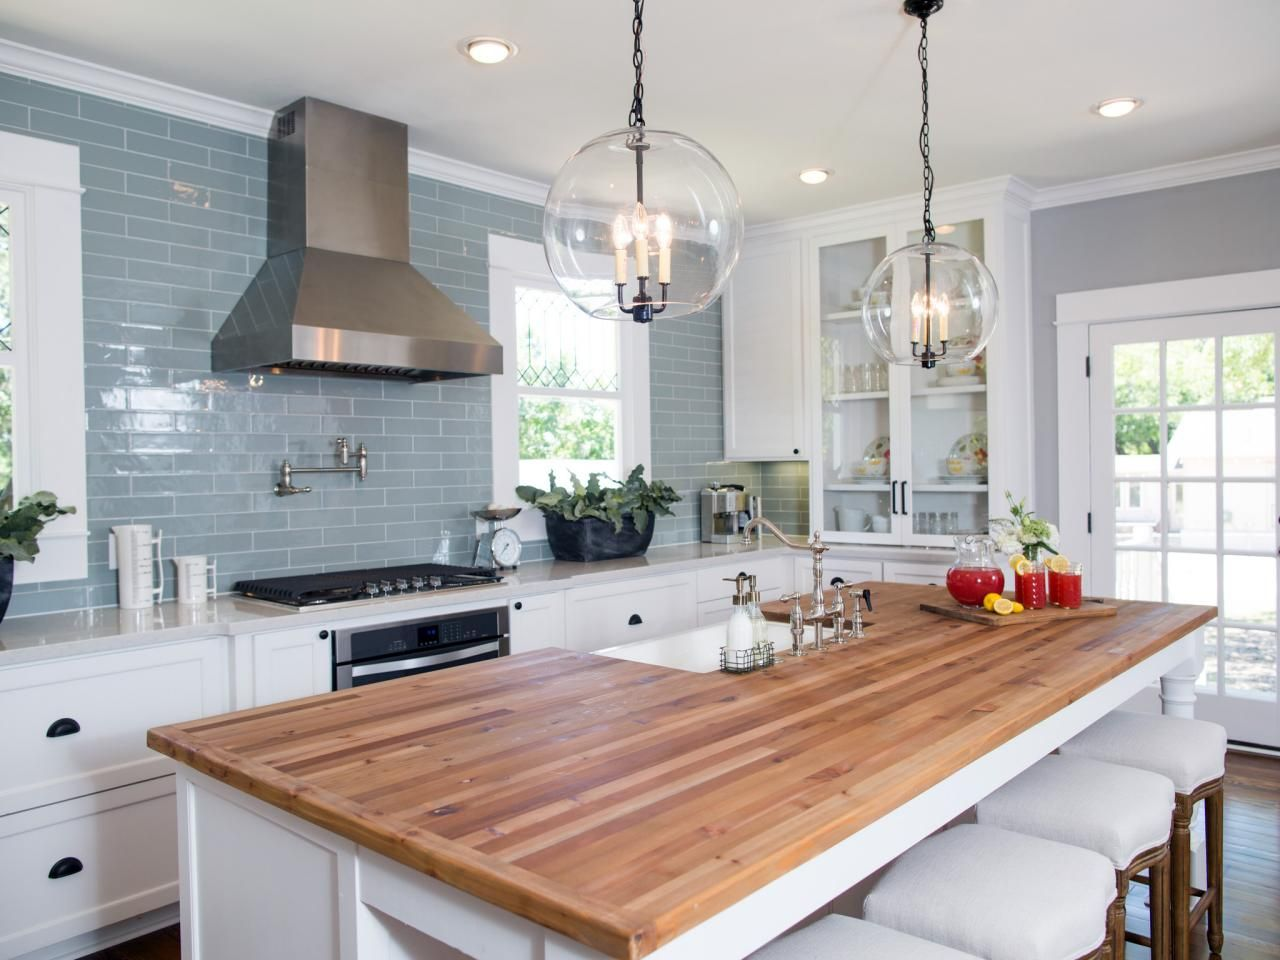 10 Incredible Kitchen Makeovers From Fixer Upper | Pinterest ...